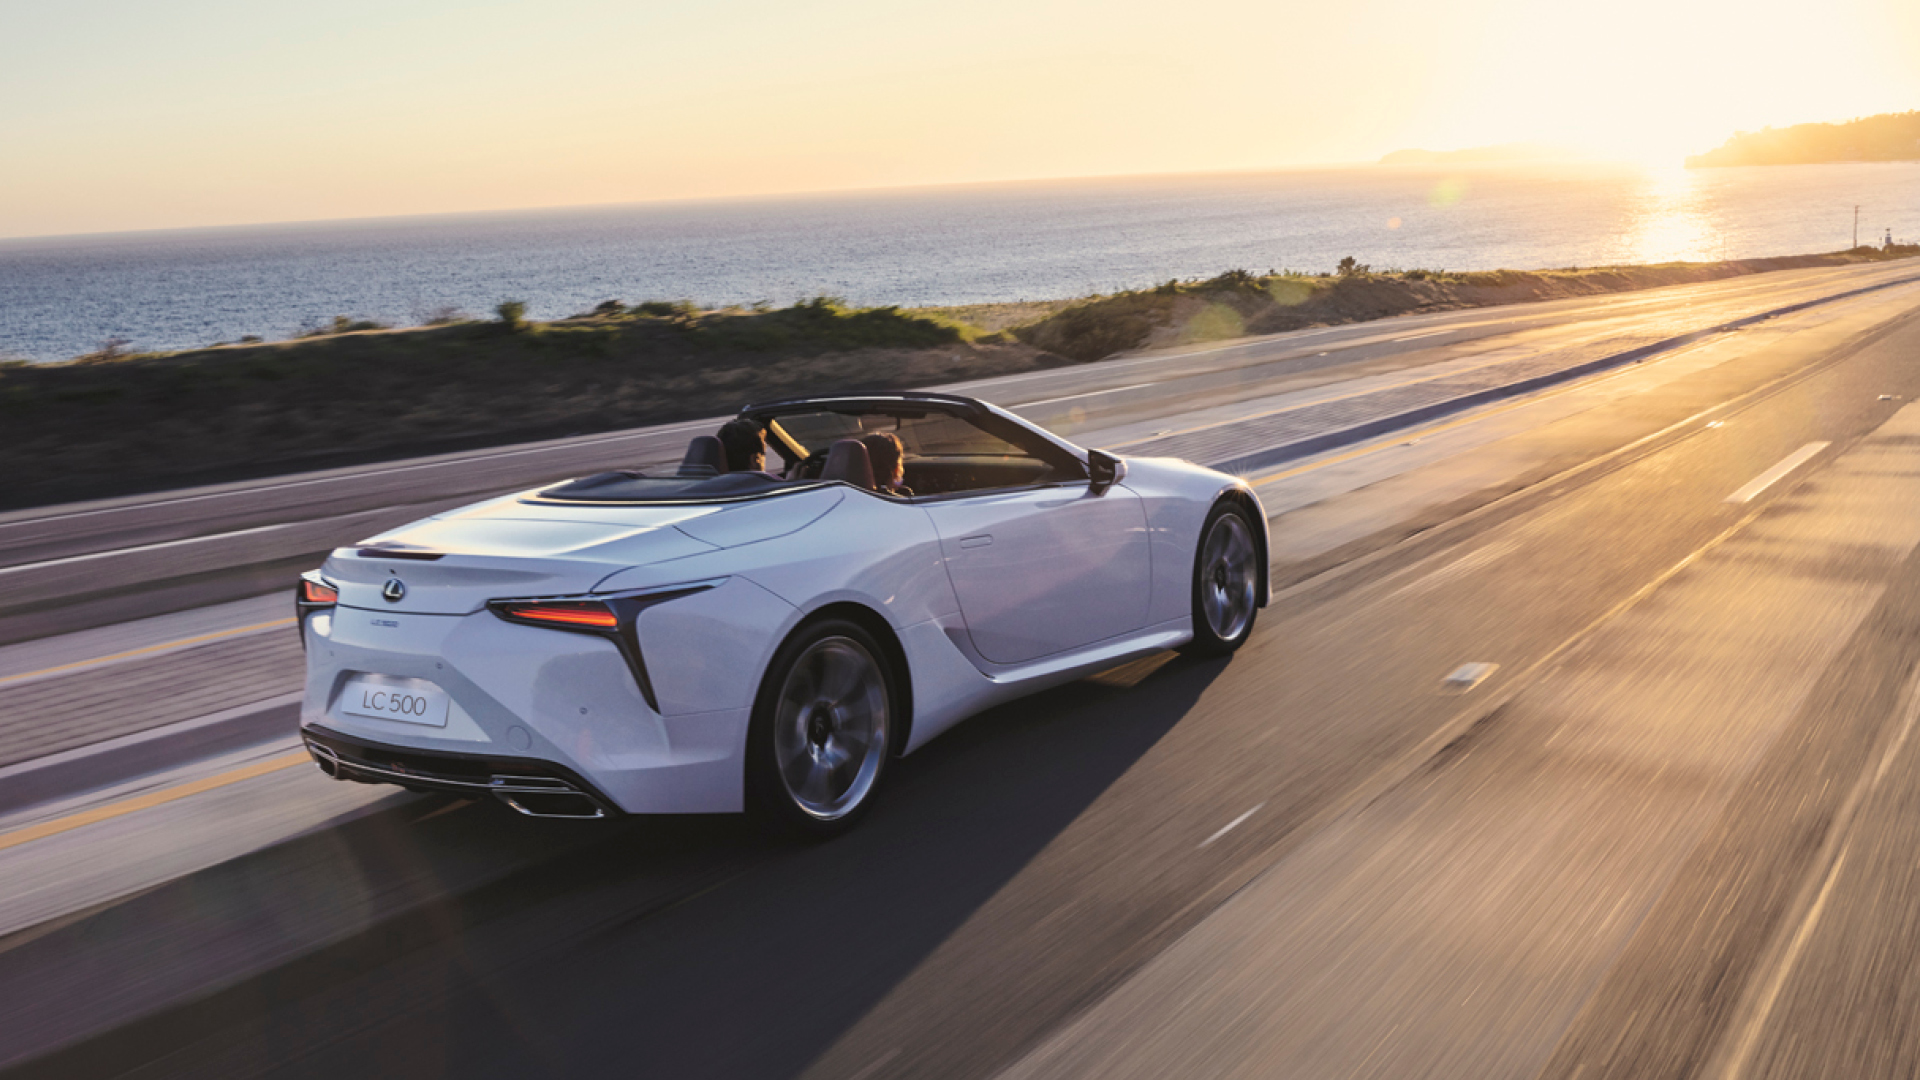 LC Convertible The Sound of Emotion Hub Image